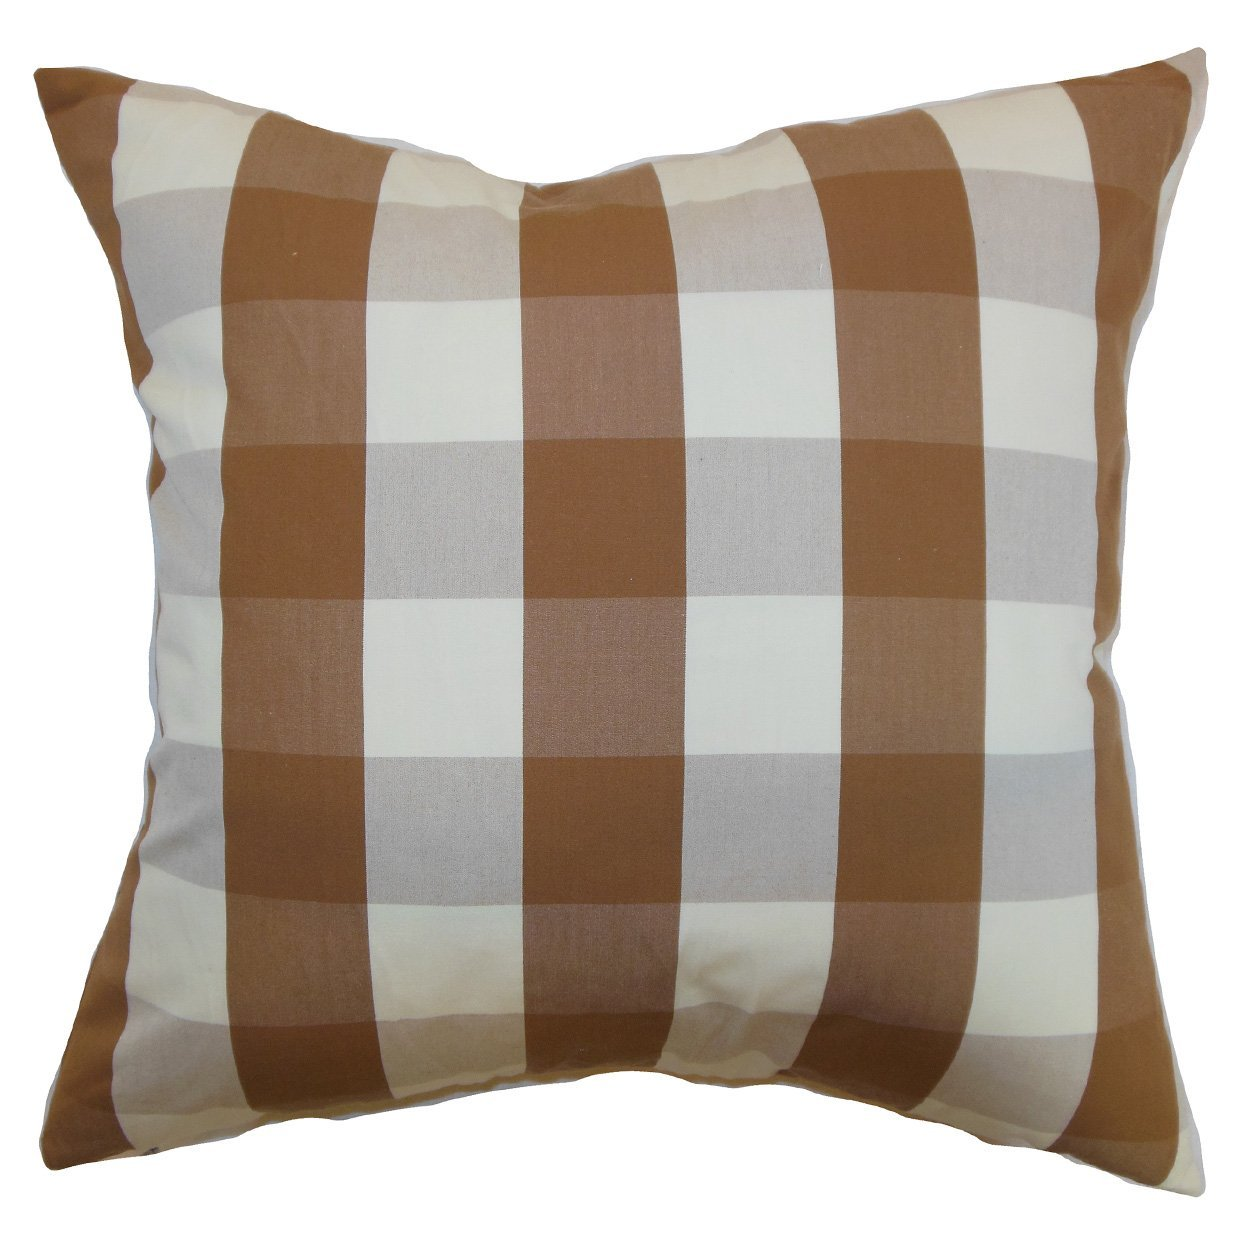 Queen//20 X 30 The Pillow Collection QUEEN-MVT-1198-BROWN-S100 Brown Kamuela Plaid Bedding Sham